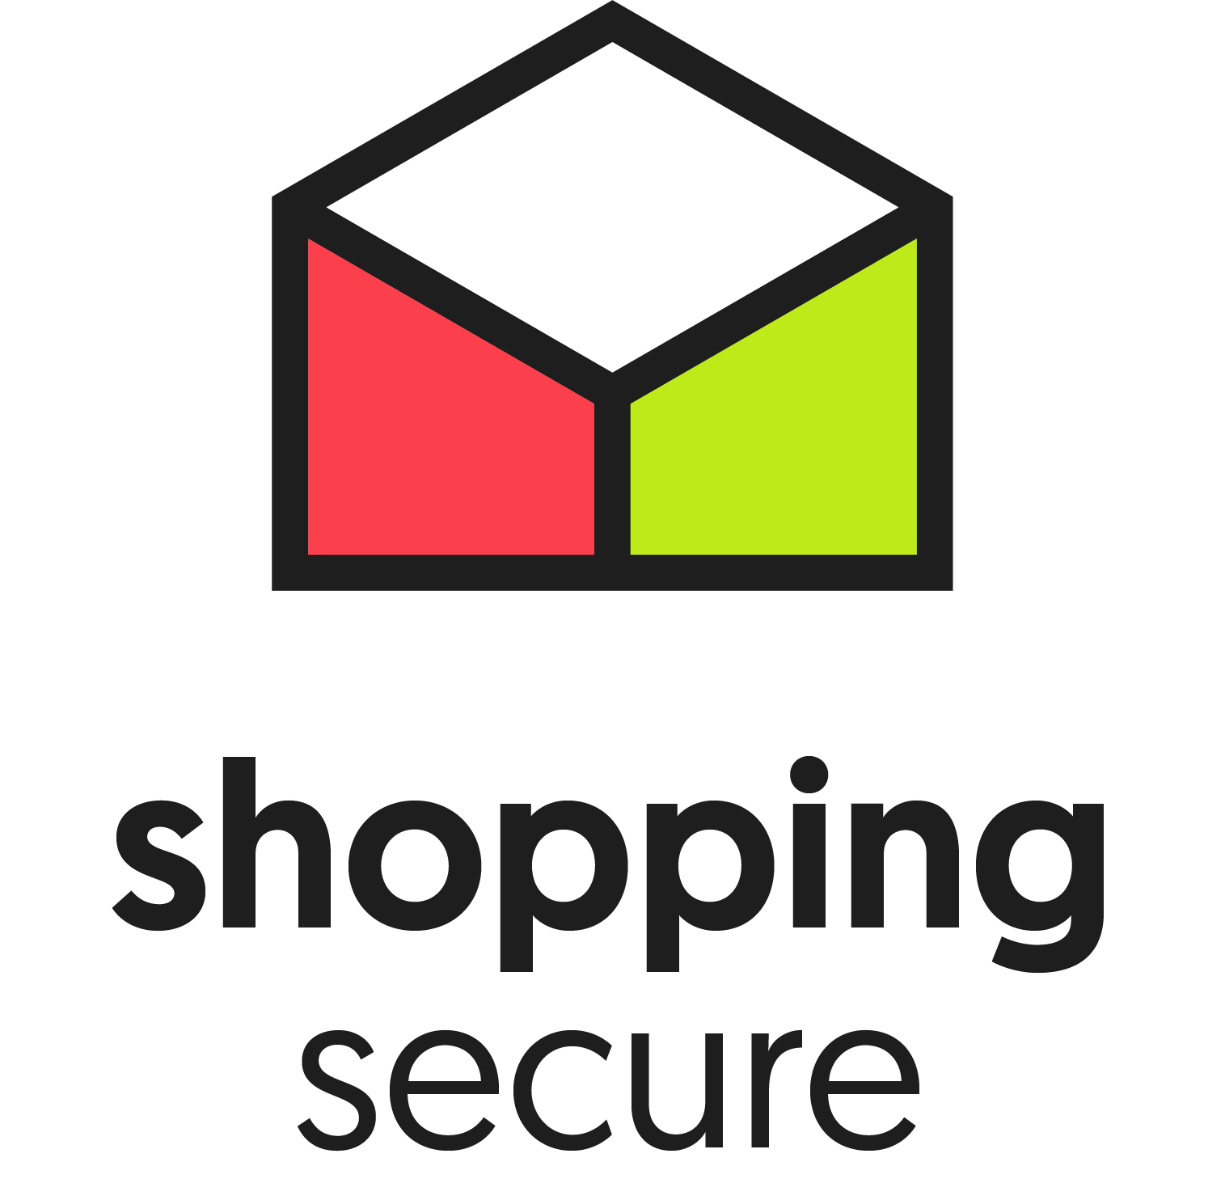 Shopping Secure certificate Amsterdenim